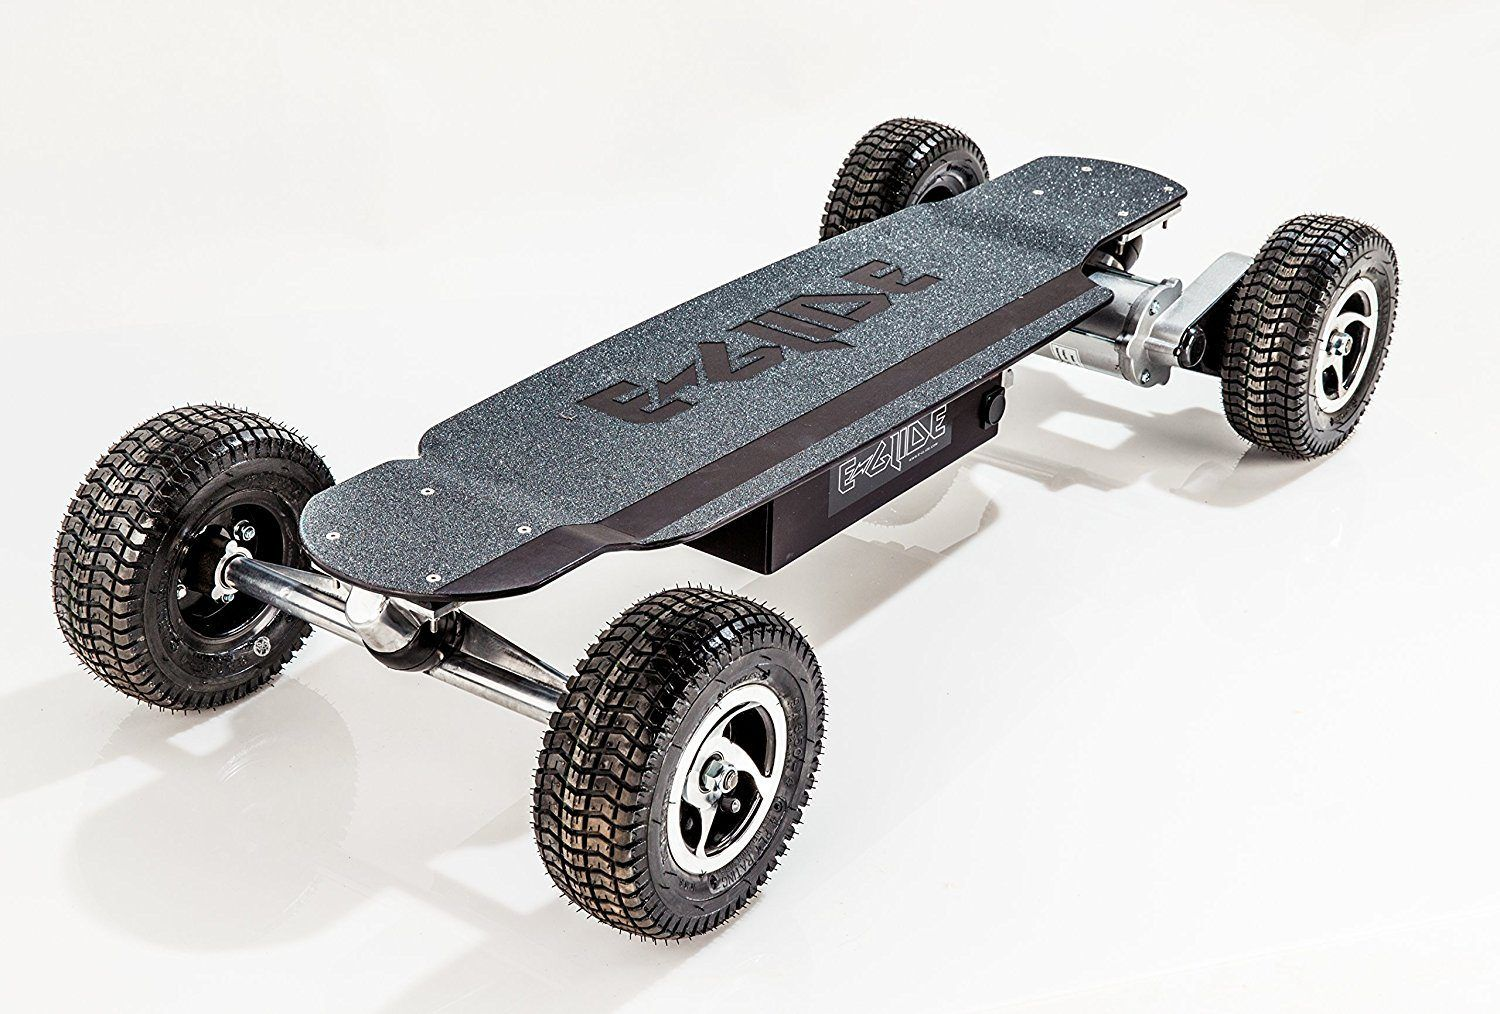 GT-Powerboard-Black-Anodized-Aluminum-Off-Road-Electric-Skateboard